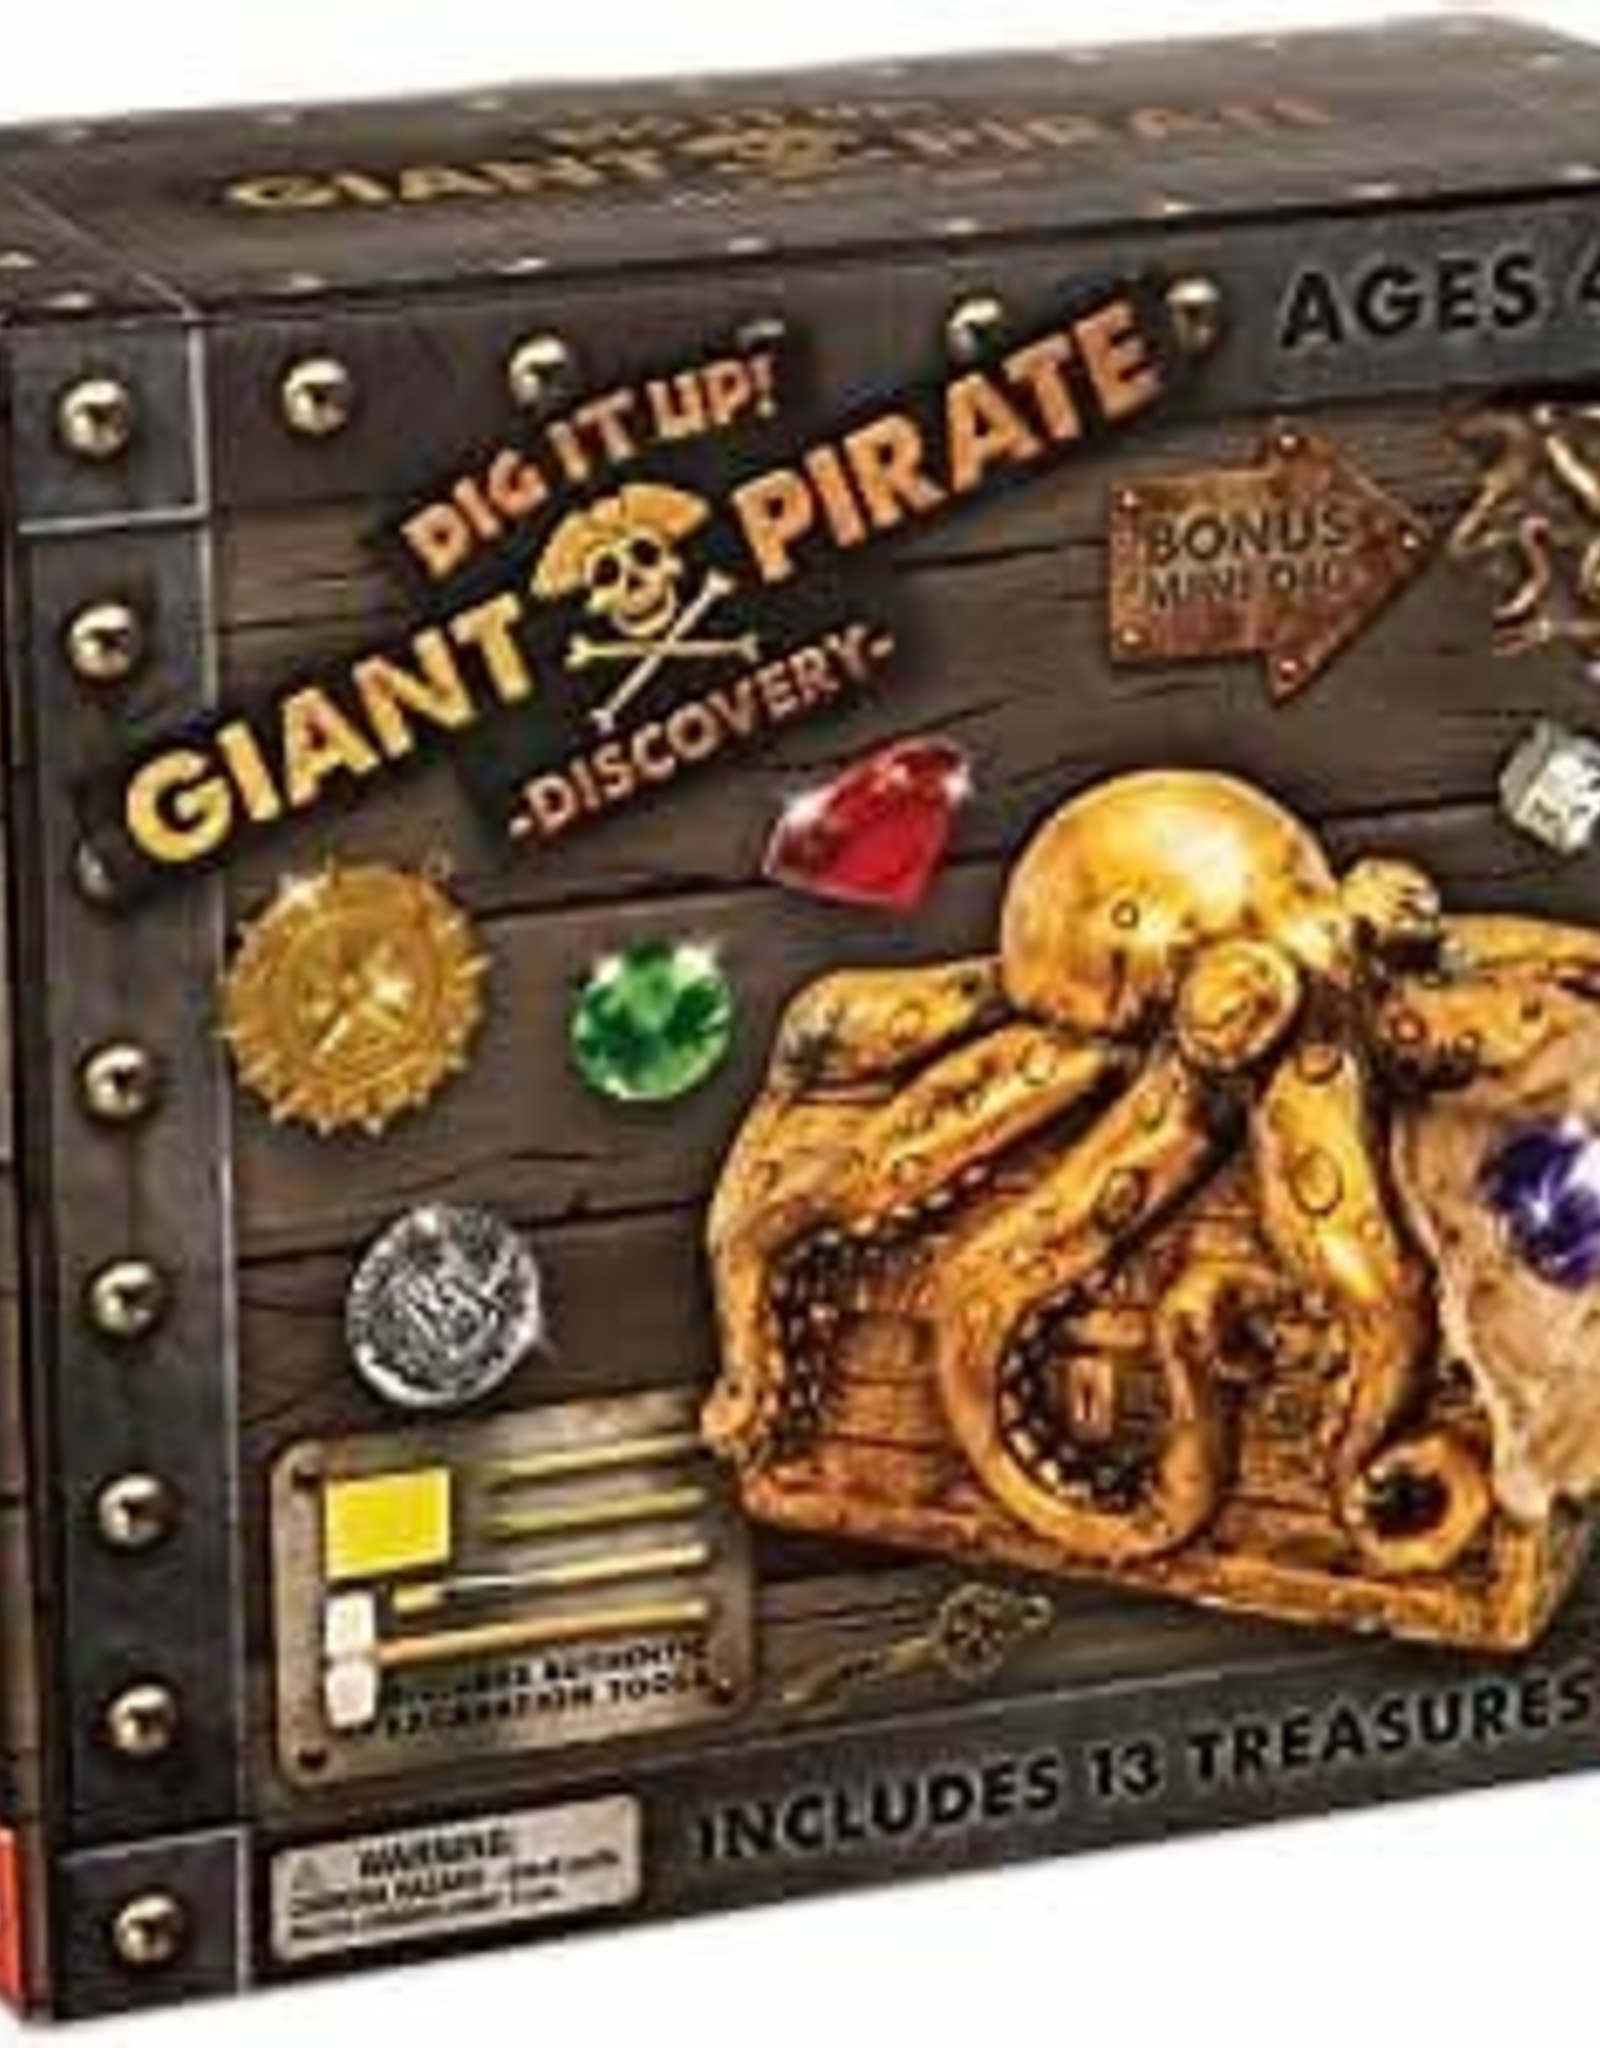 Dig It Up! Giant Pirate Discovery